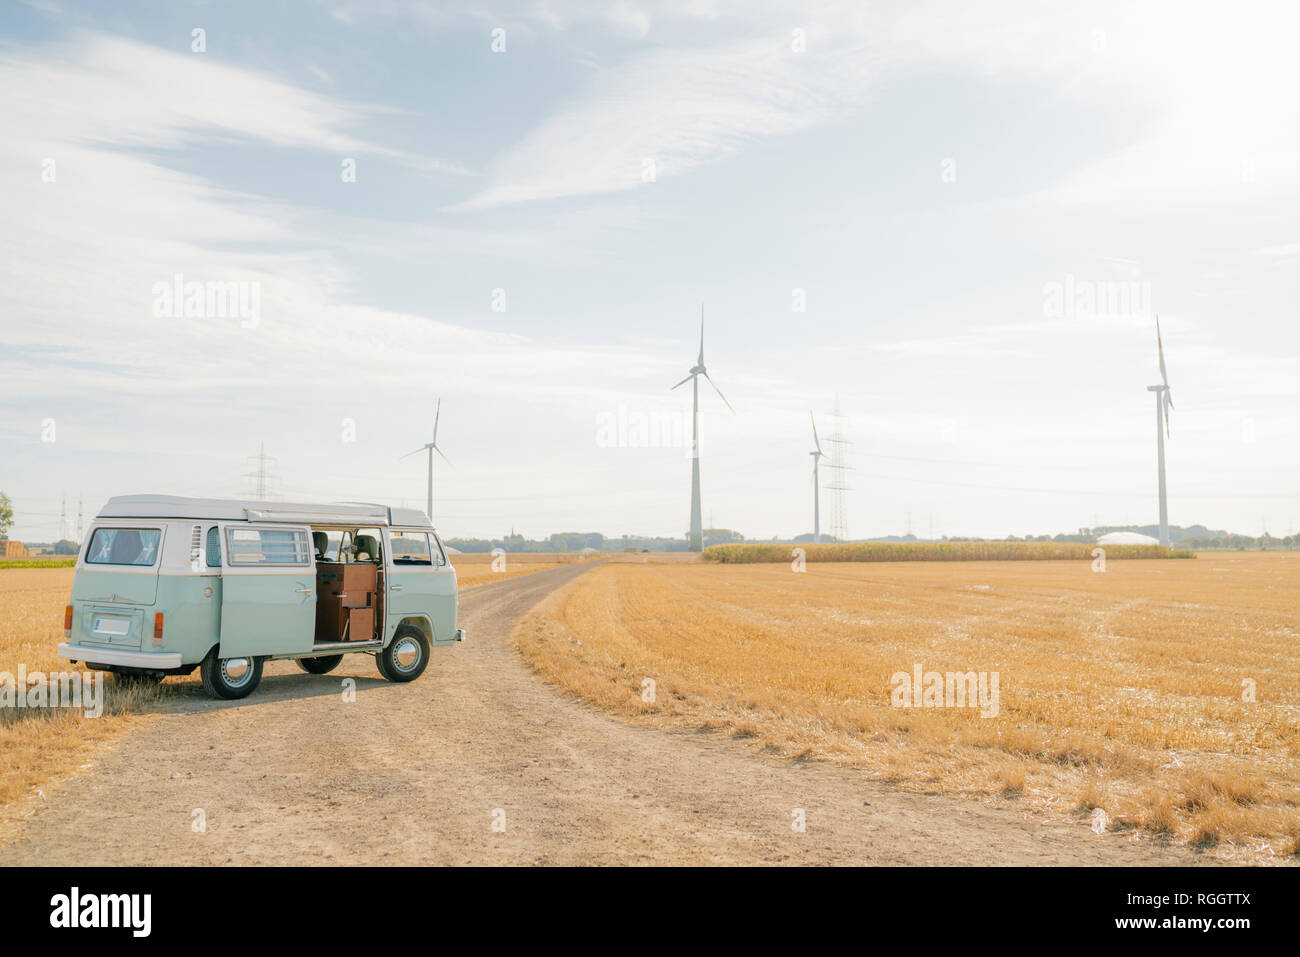 Camper van parked on dirt track in rural landscape with wind turbines Stock Photo